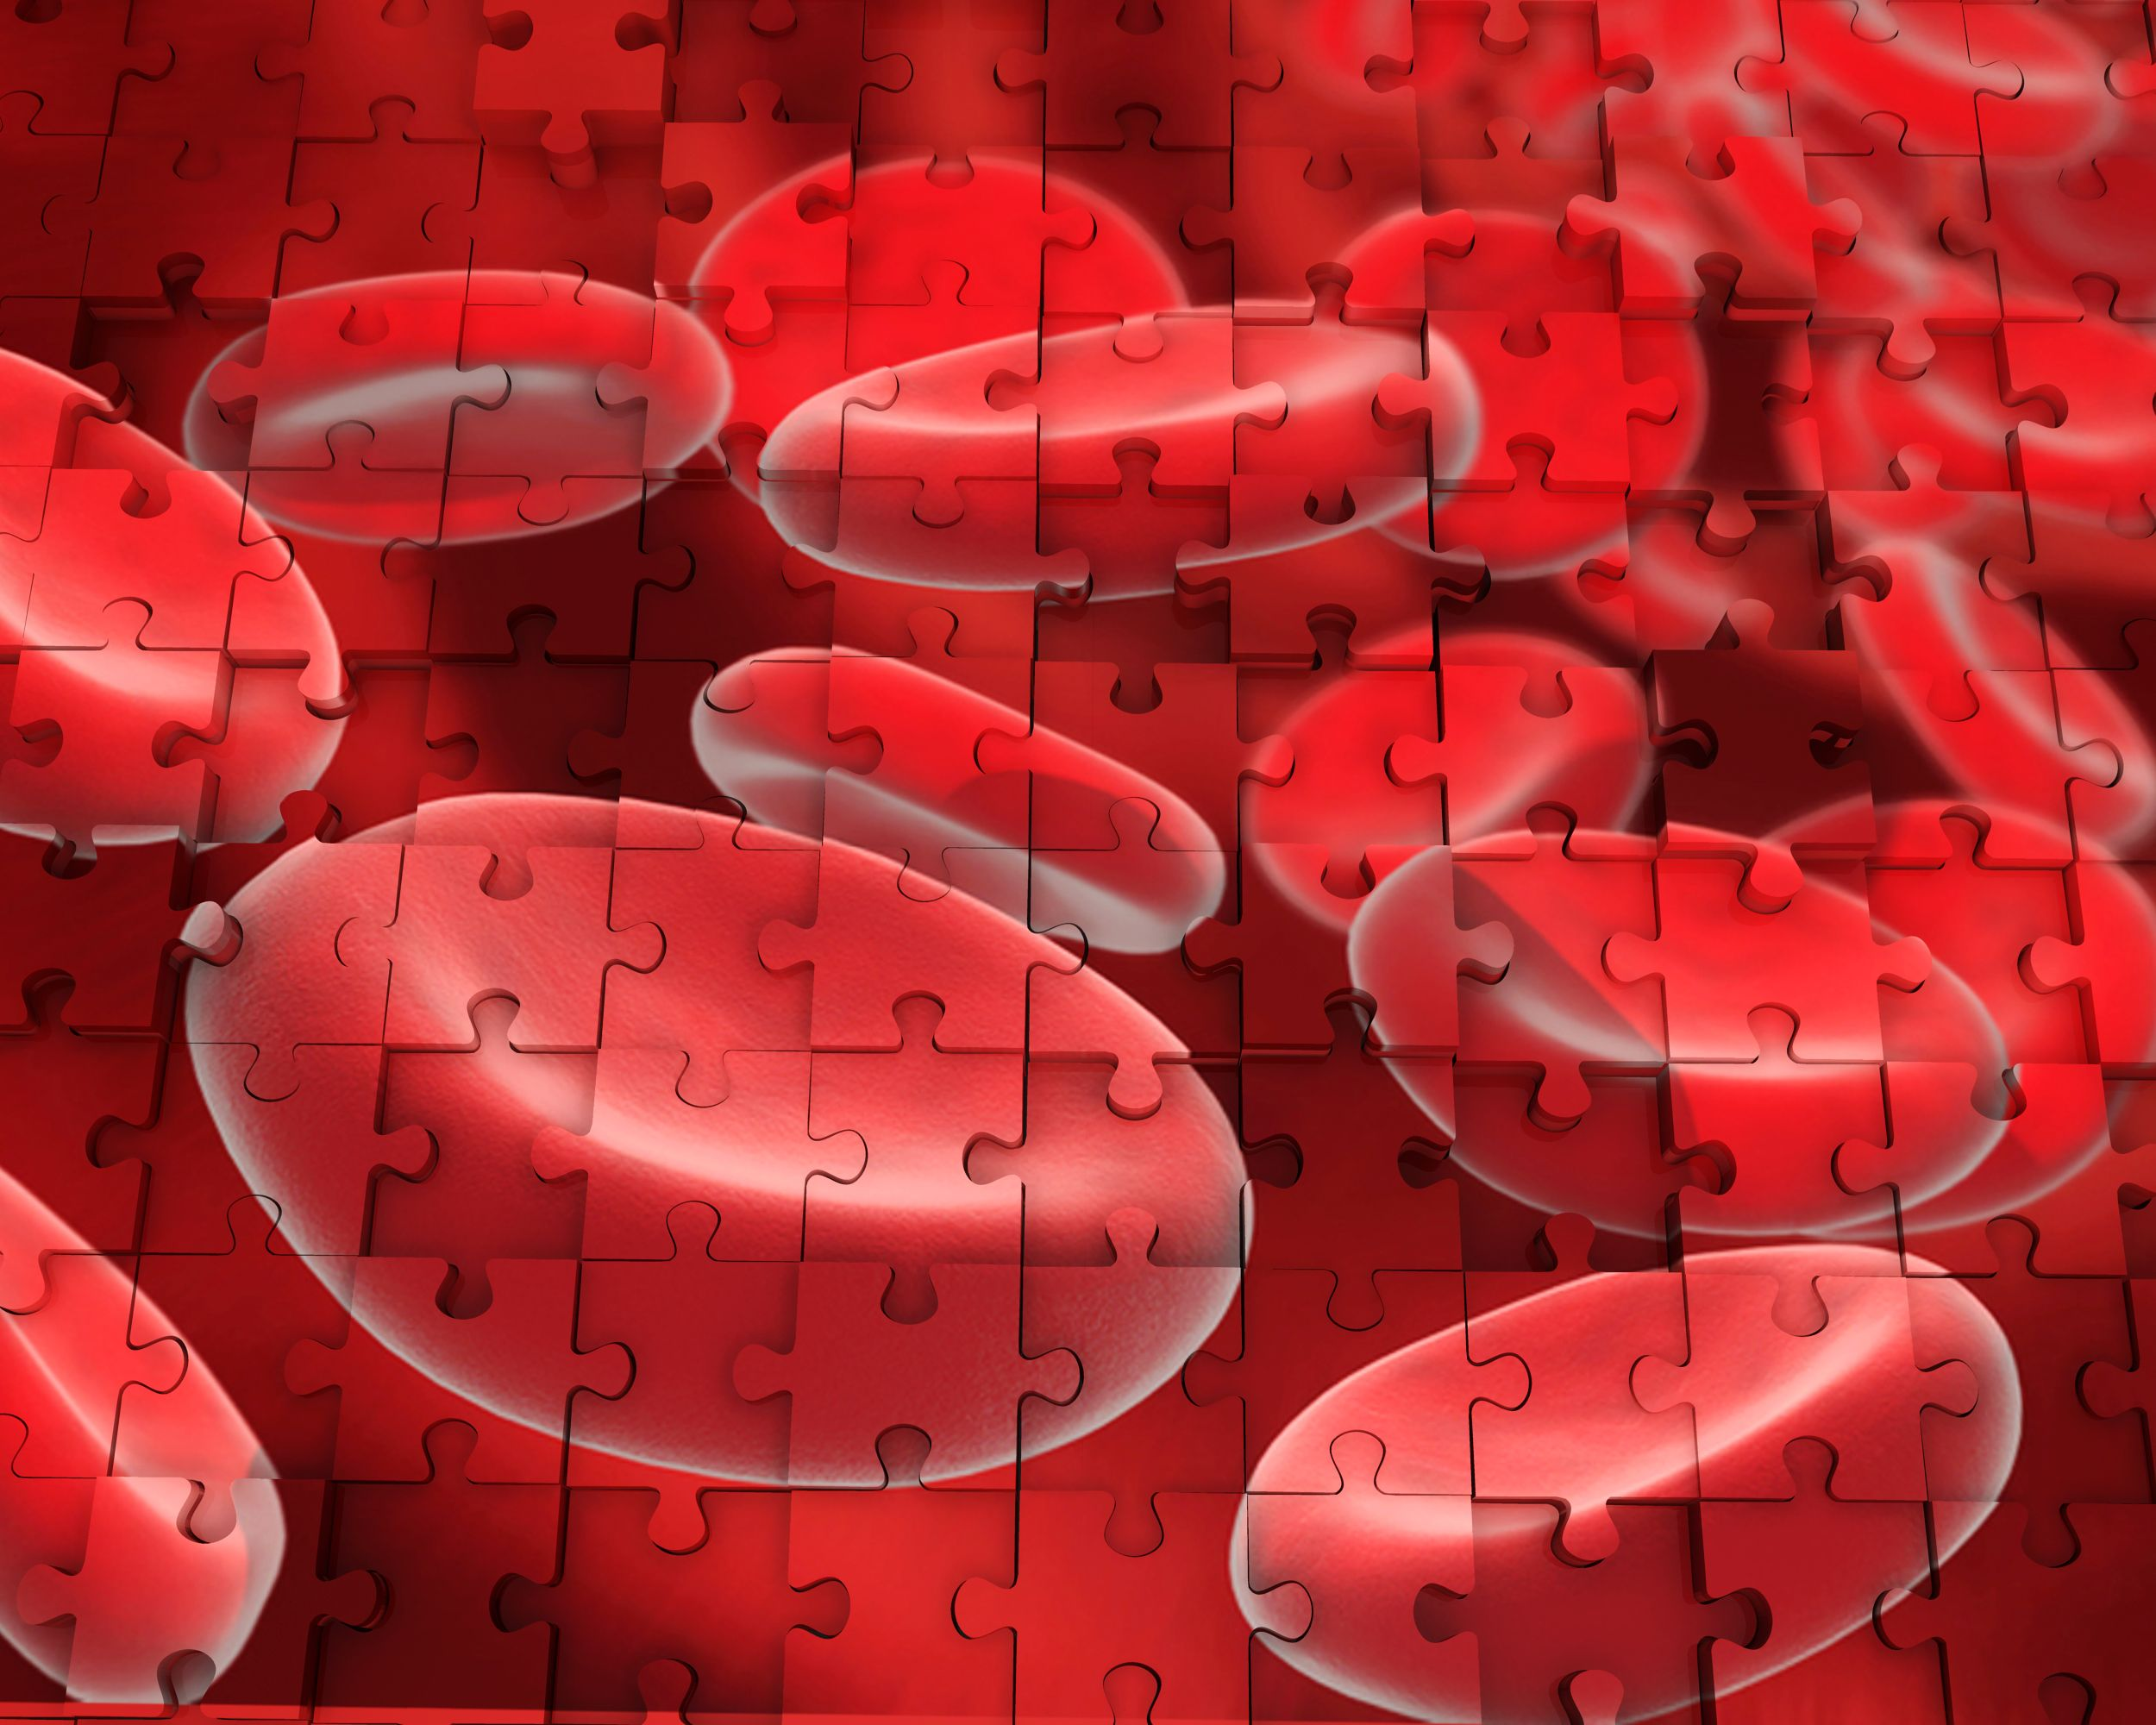 1114_3d_image_of_human_blood_cells_stock_photo_Slide01